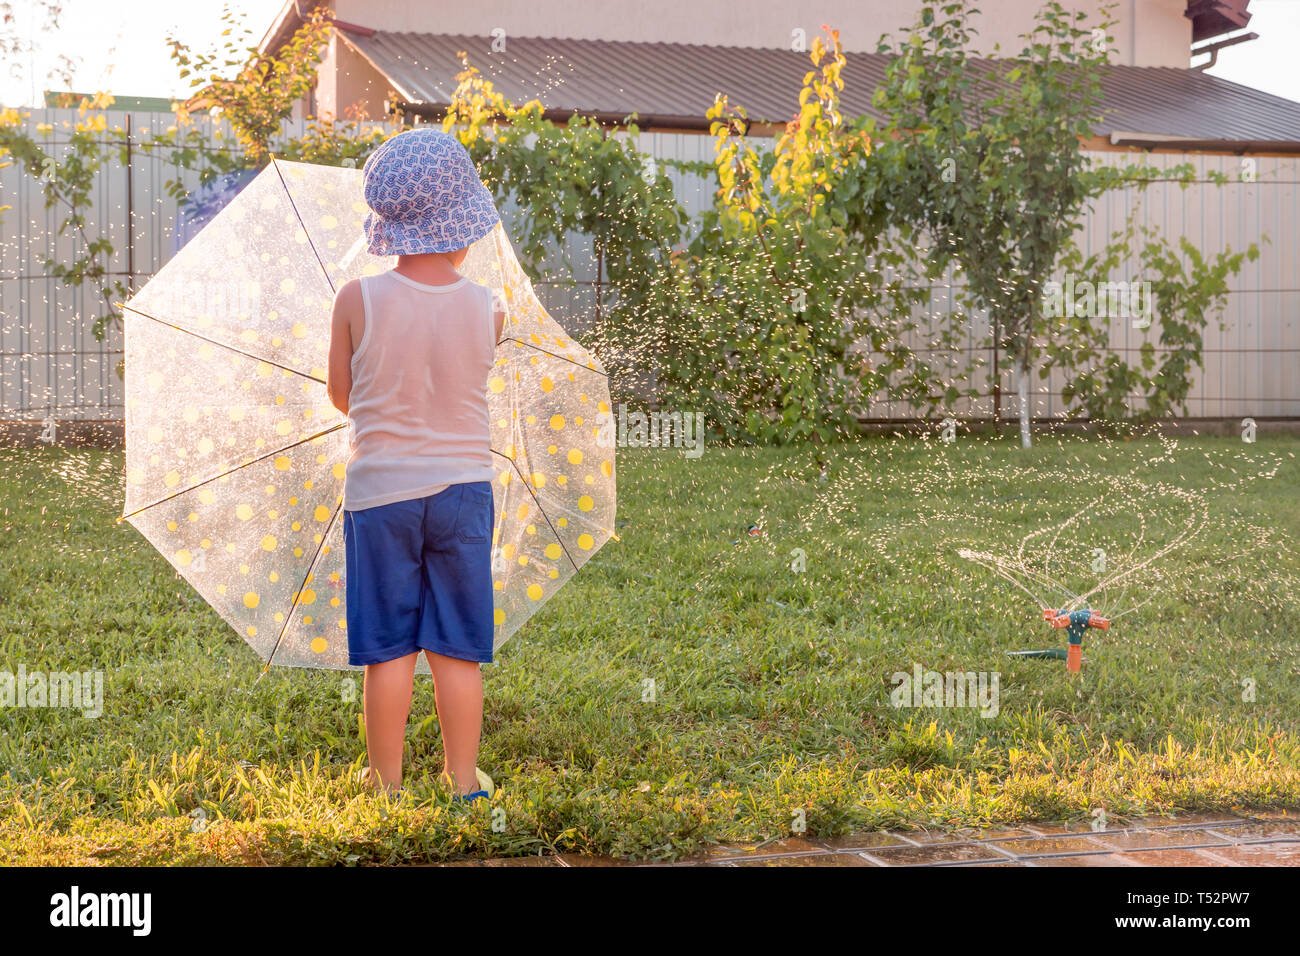 Happy childhood concept. Summer holidays with children. Automatic plant watering system. Preschooler having fun on front yard near watering system - Stock Image